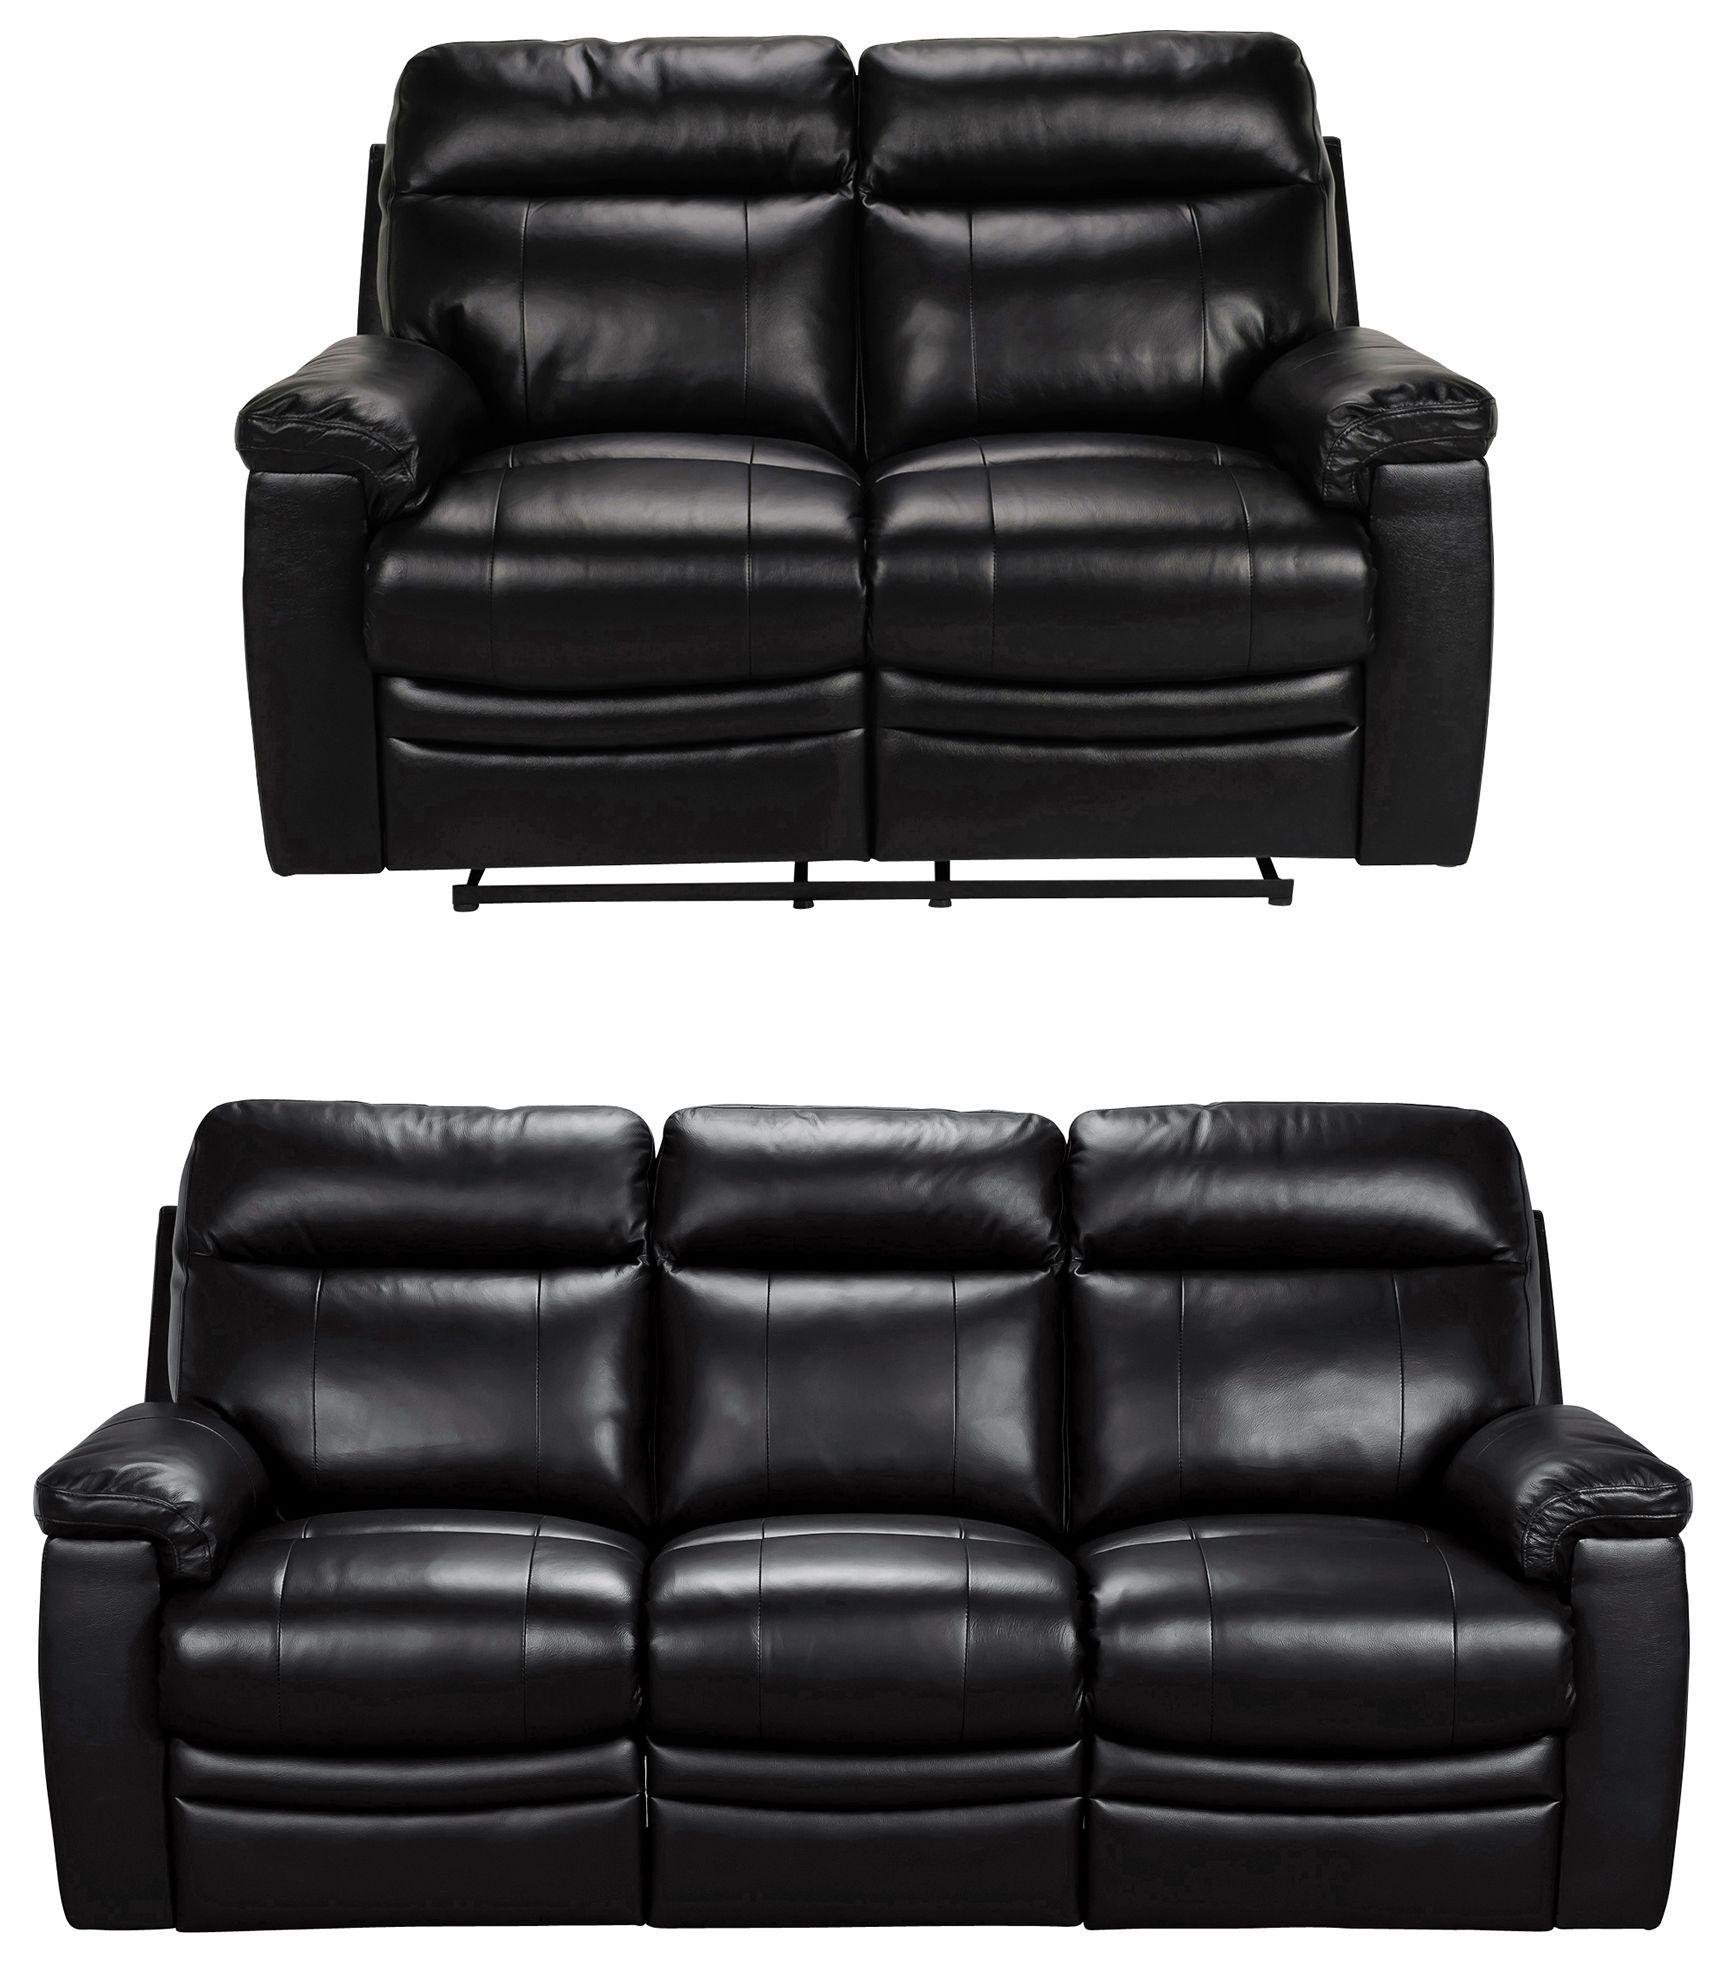 Argos Home New Paolo 3 Seat & 2 Seat Recliner Sofa - Blk